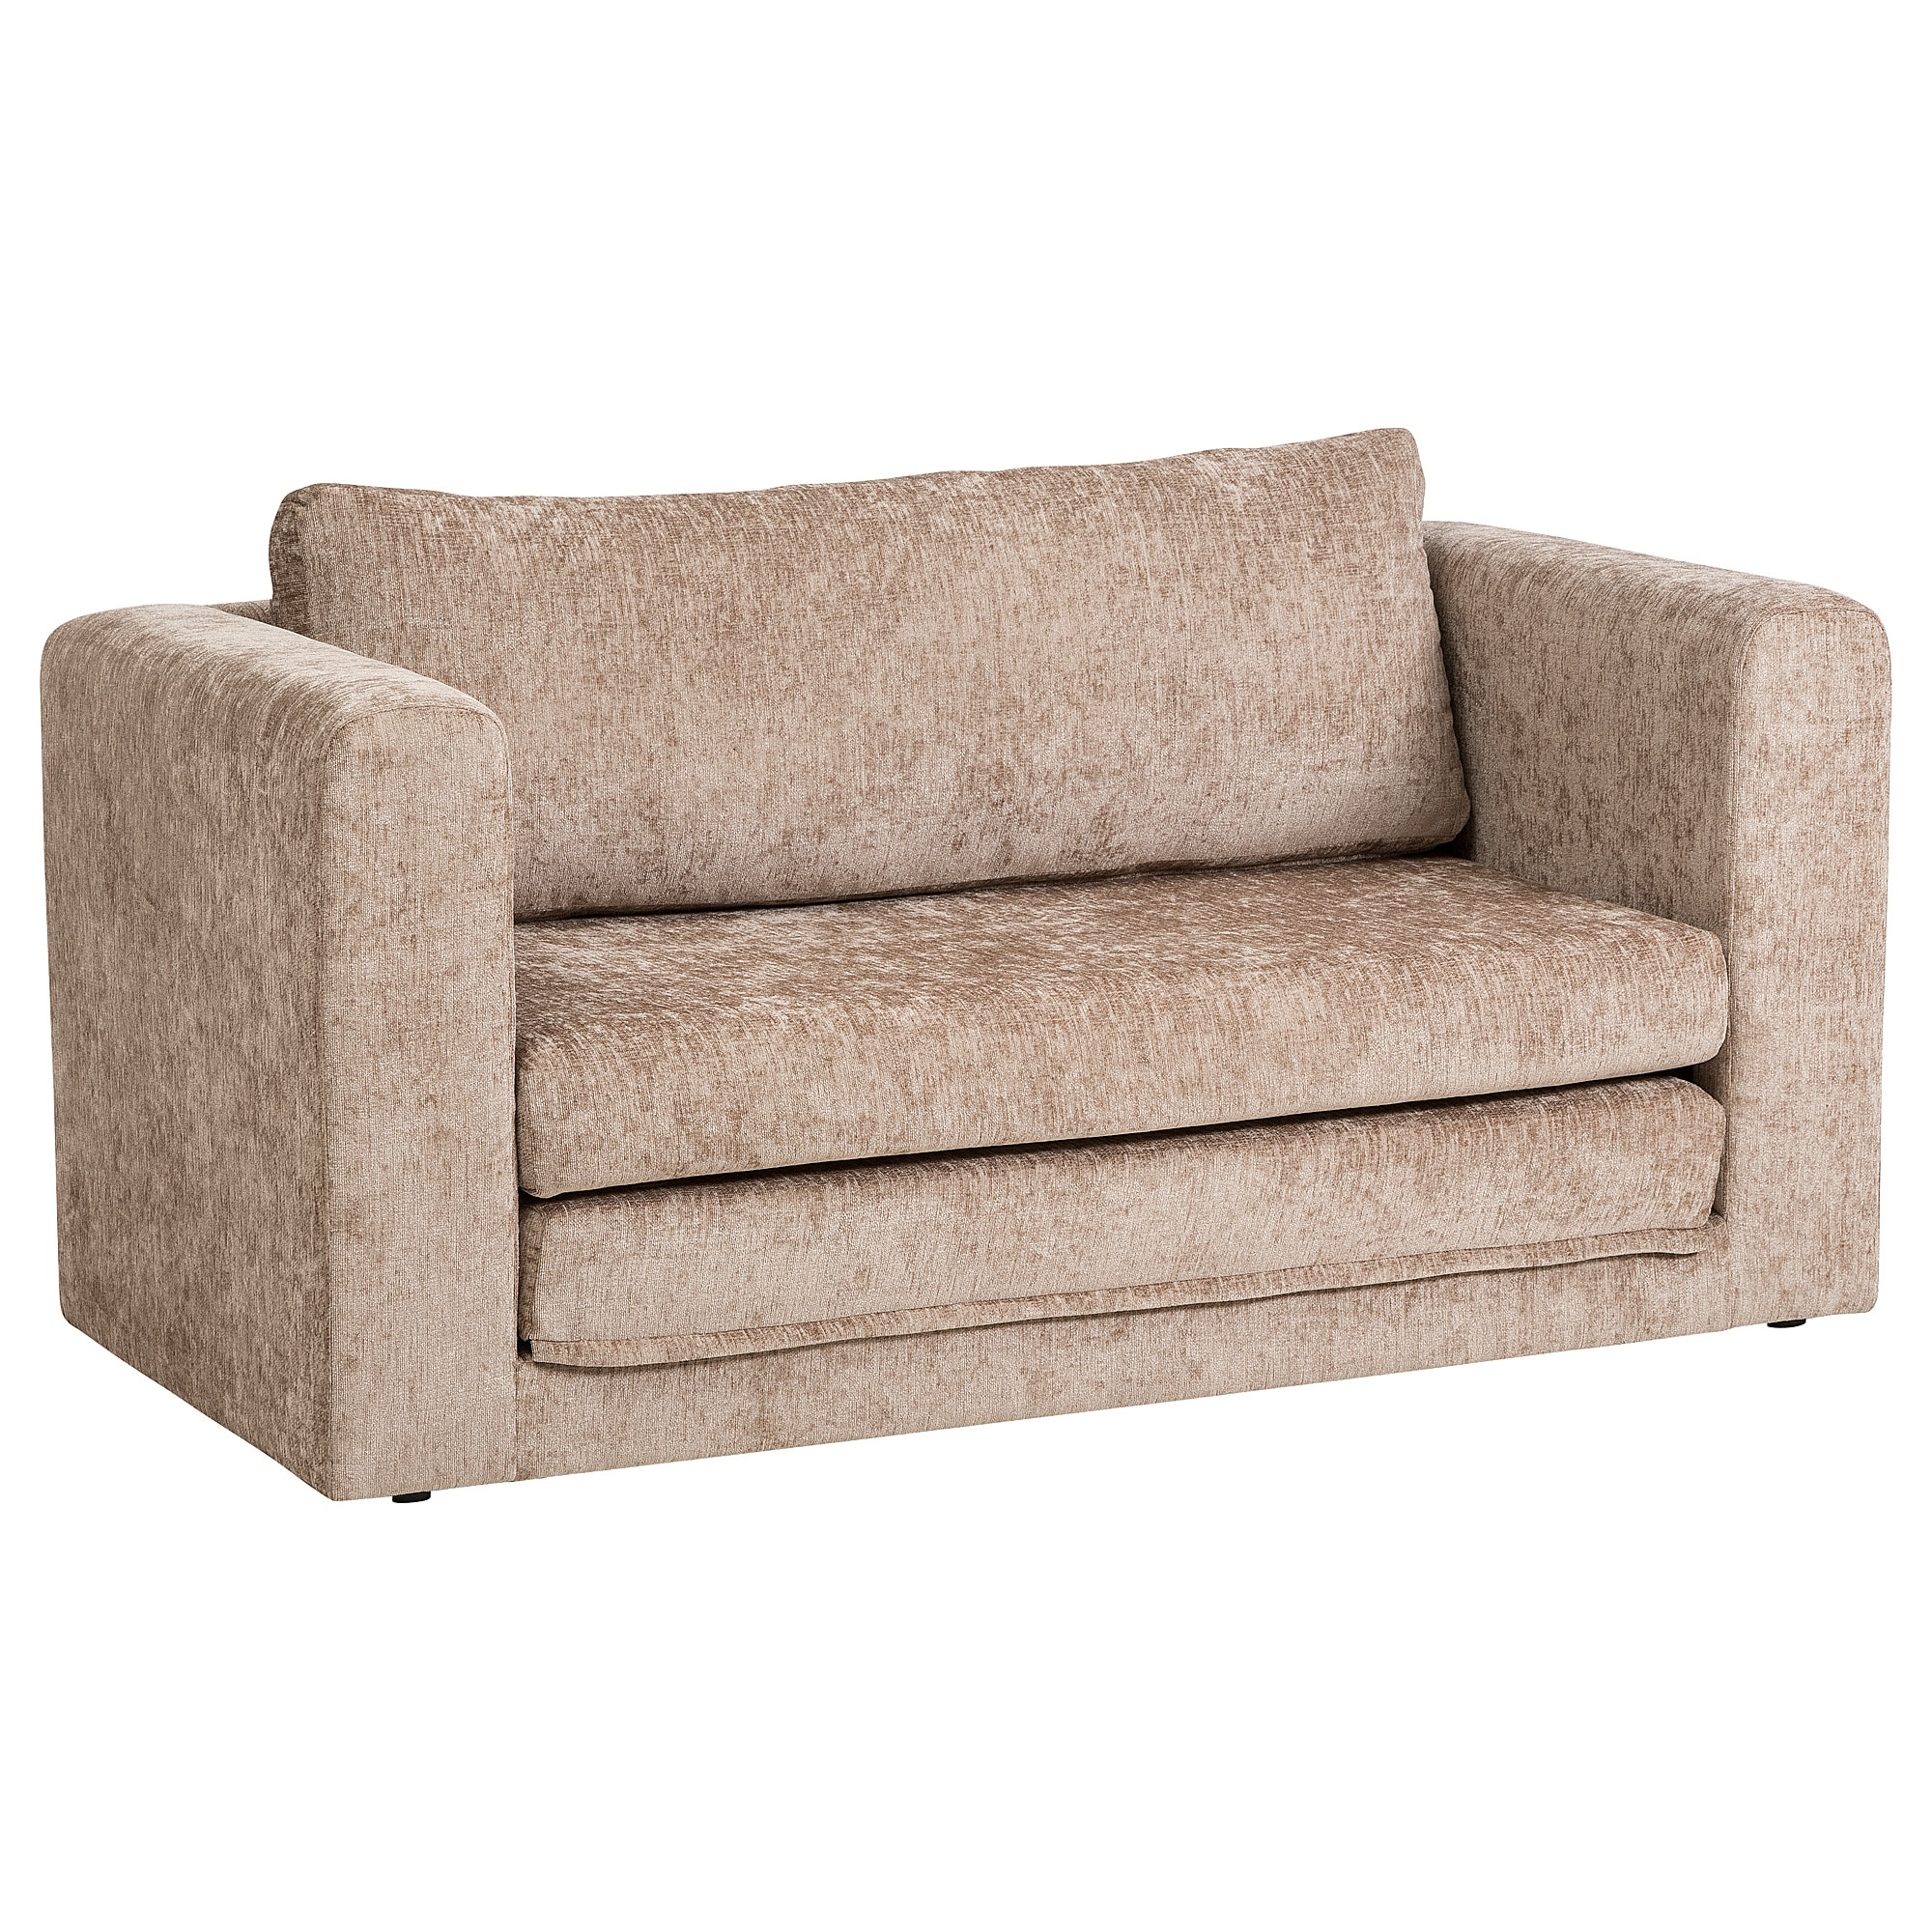 Sofa Bed Chairs With Regard To Well Liked Corner Sofa Beds, Futons & Chair Beds (View 7 of 20)